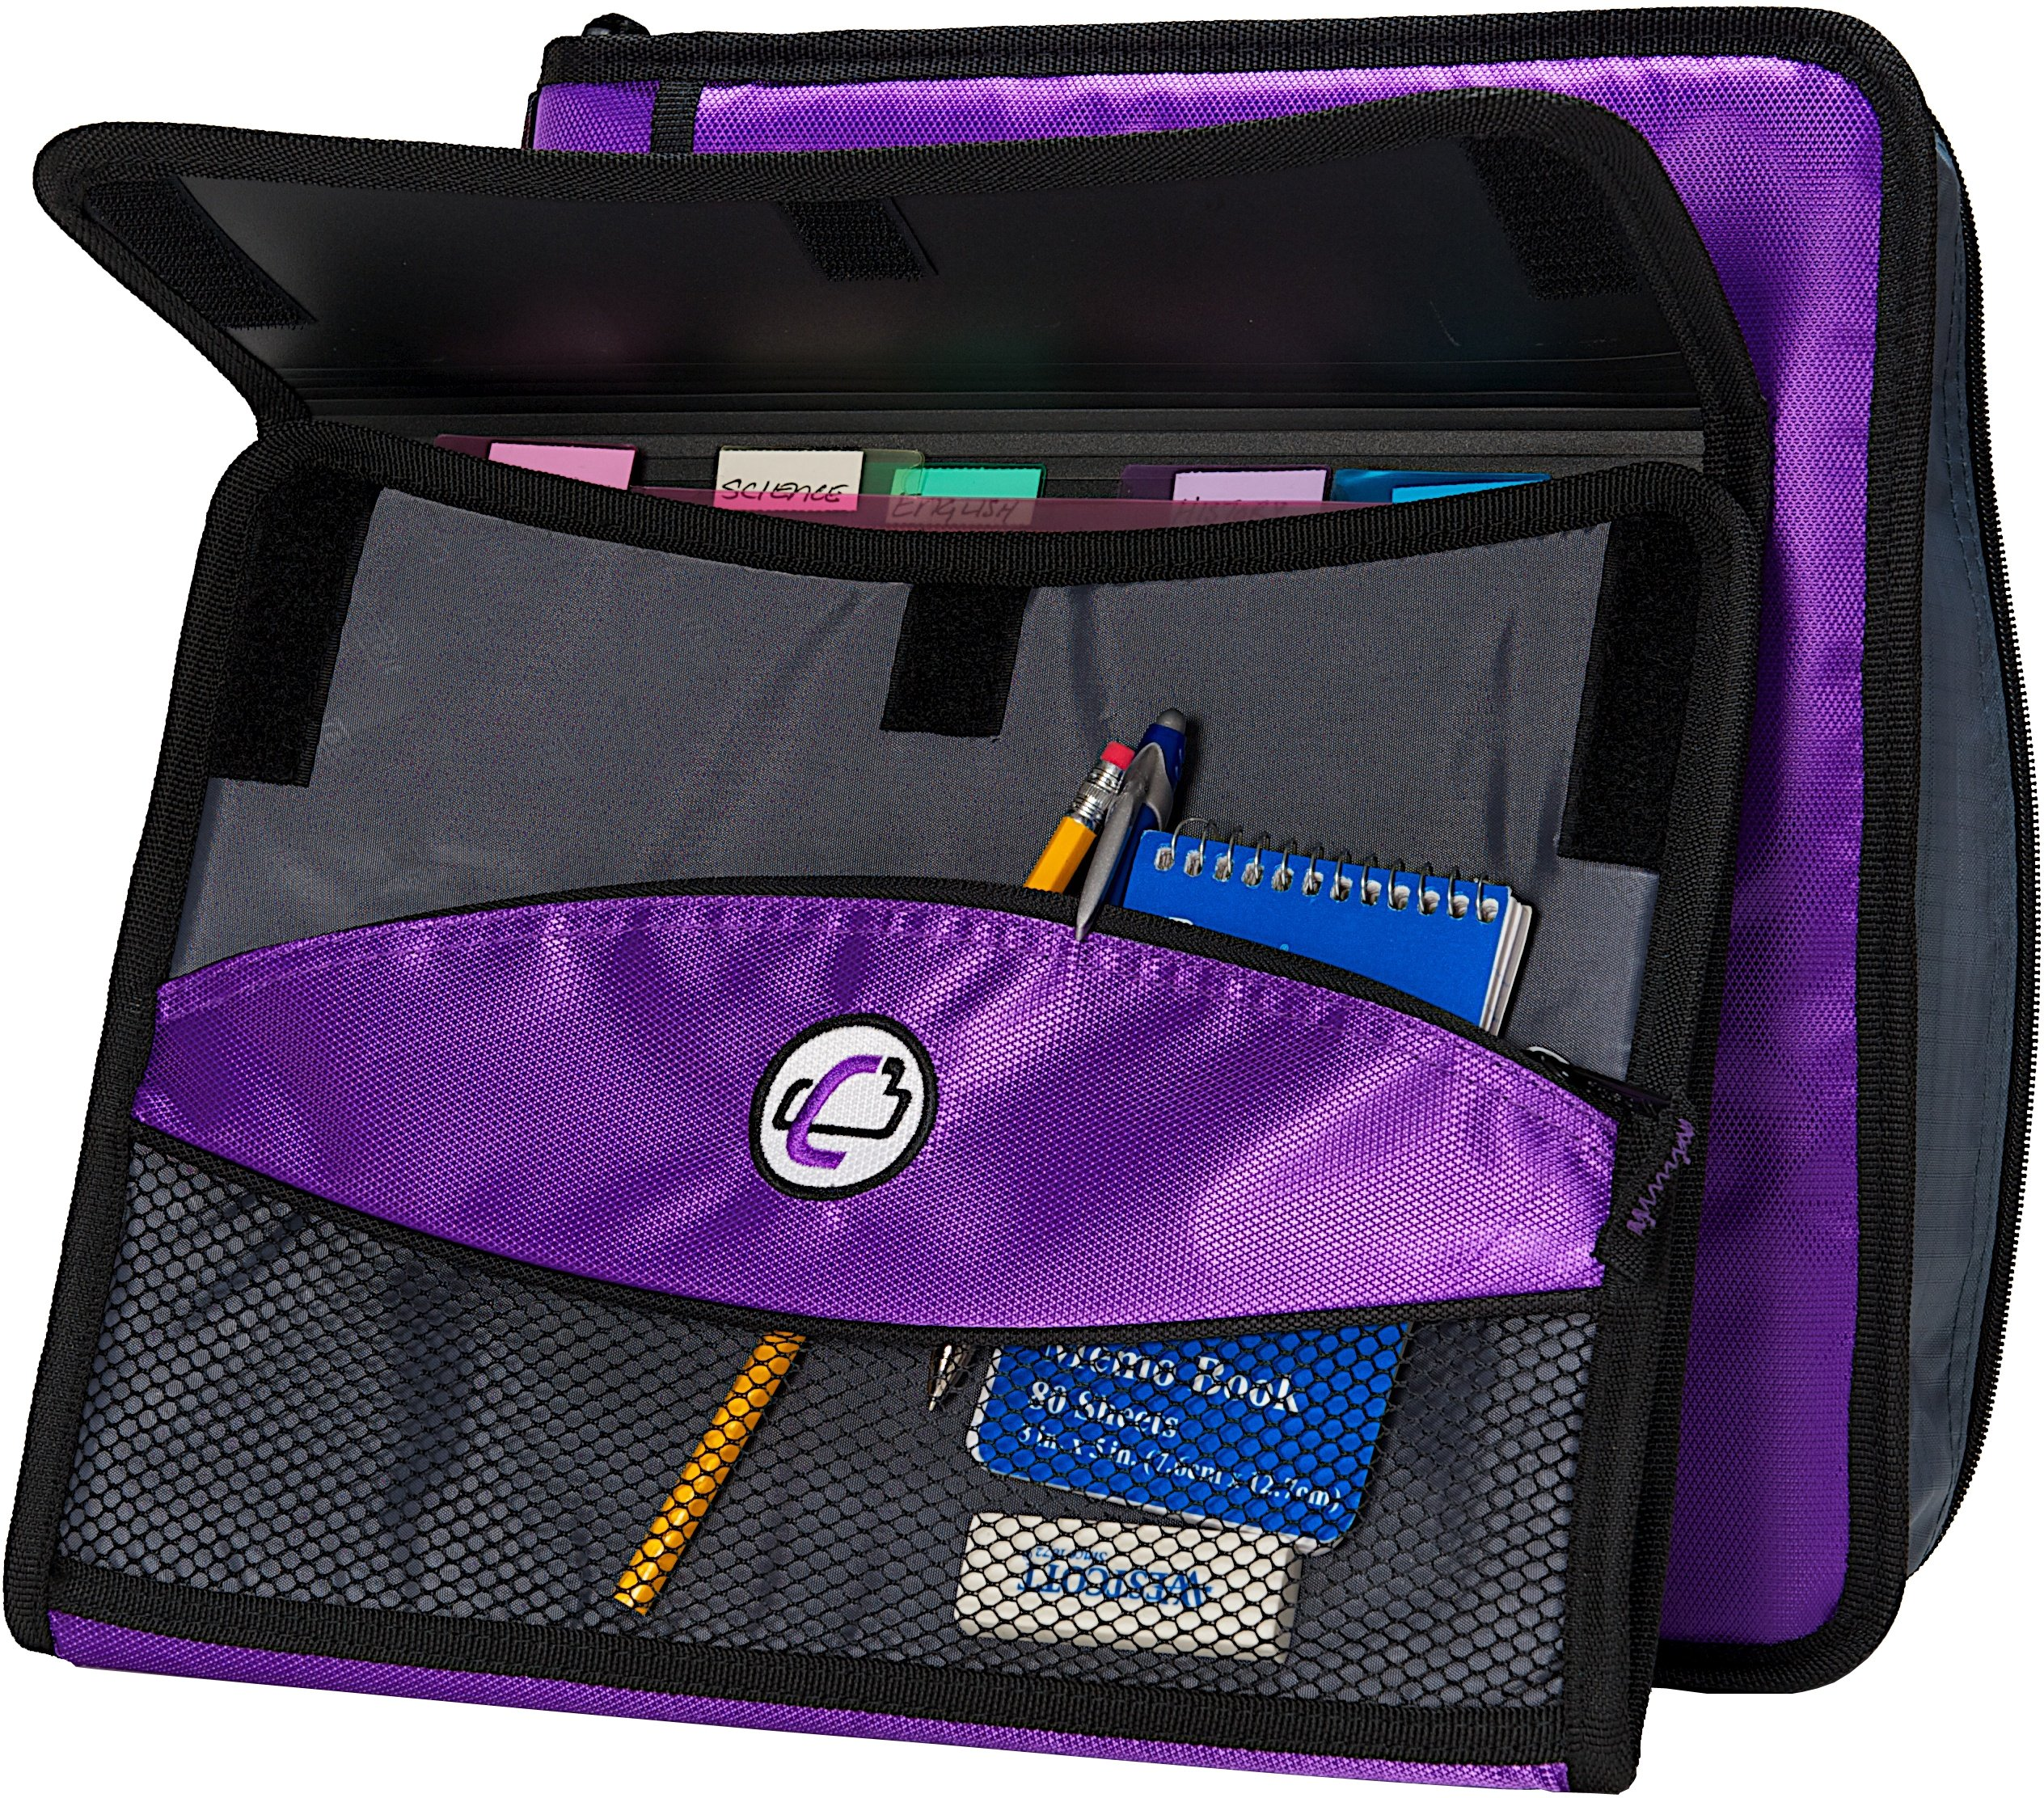 Case-it Sidekick 2-Inch O-Ring Zipper Binder with Removable Tab File, Purple, D-901-PUR by Case-It (Image #4)